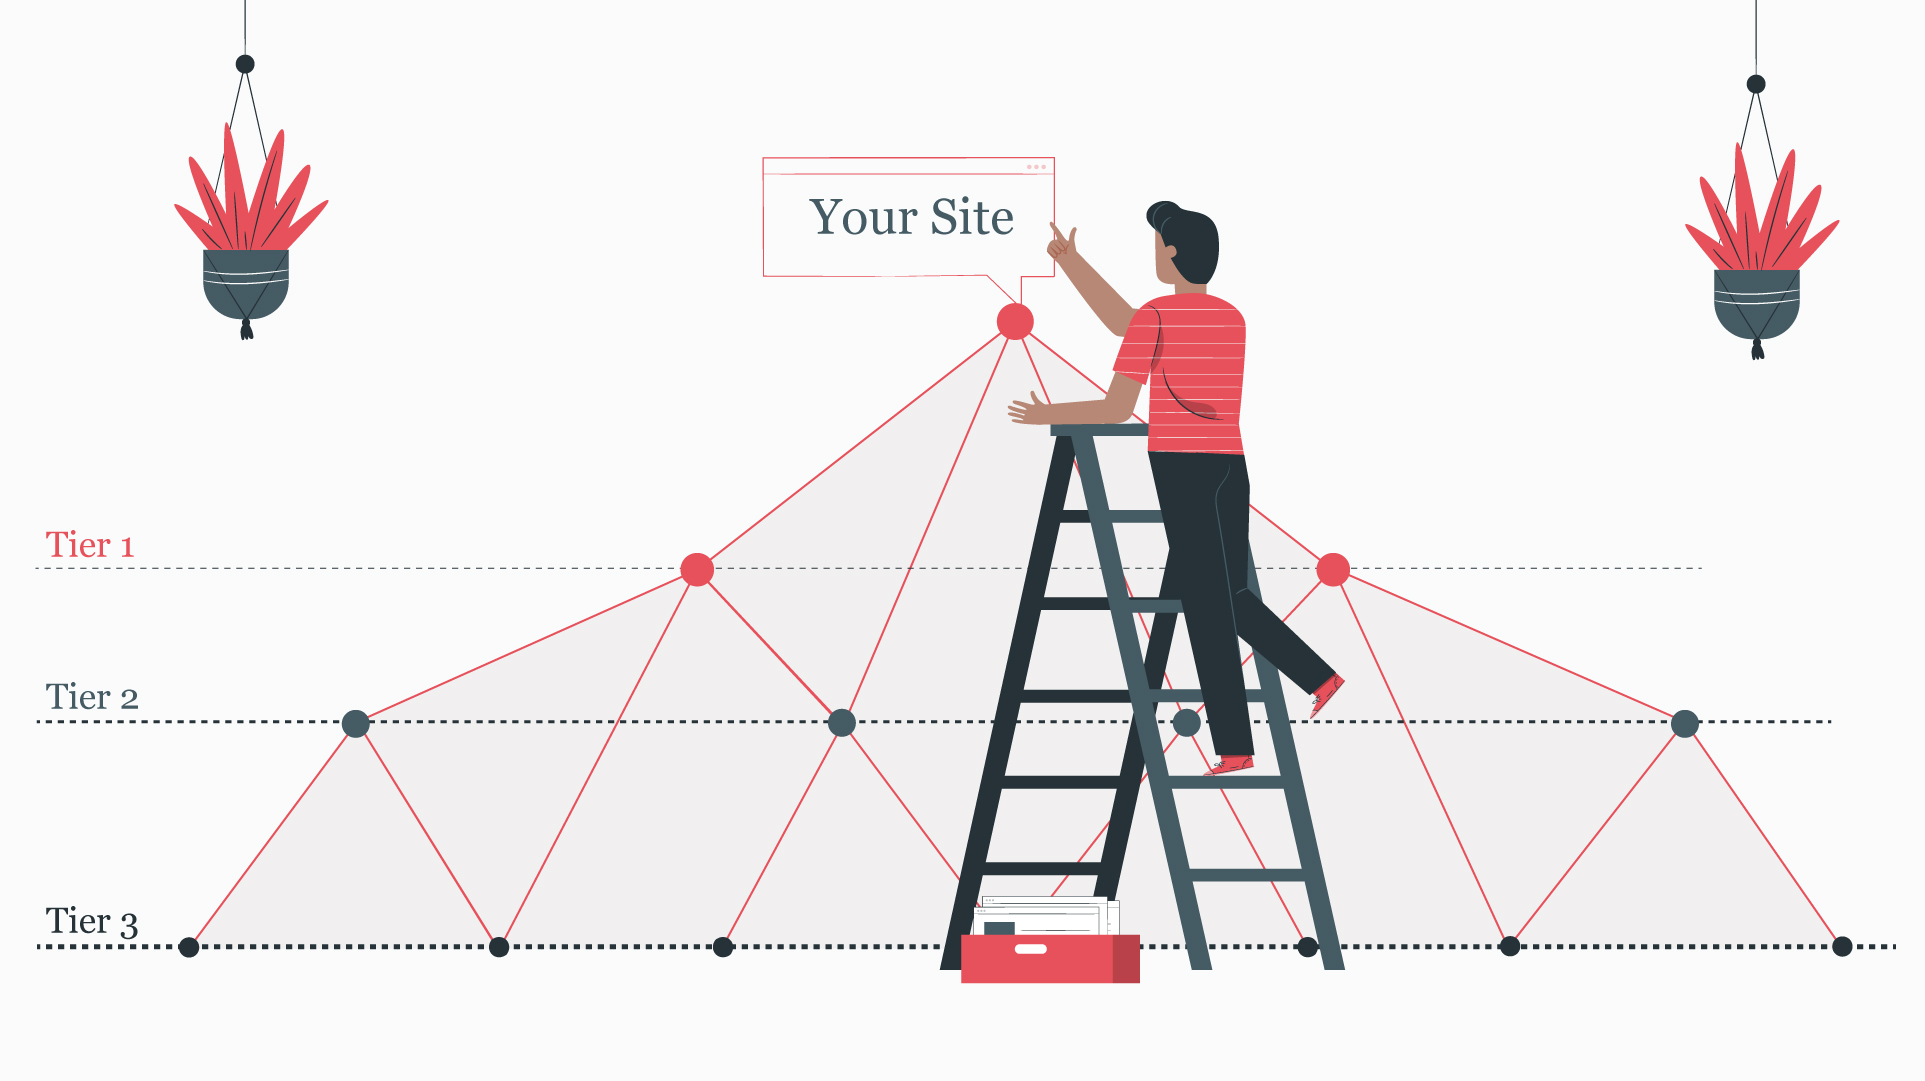 Build Backlinks Whenever You Can, Build Tier Links For Your Website